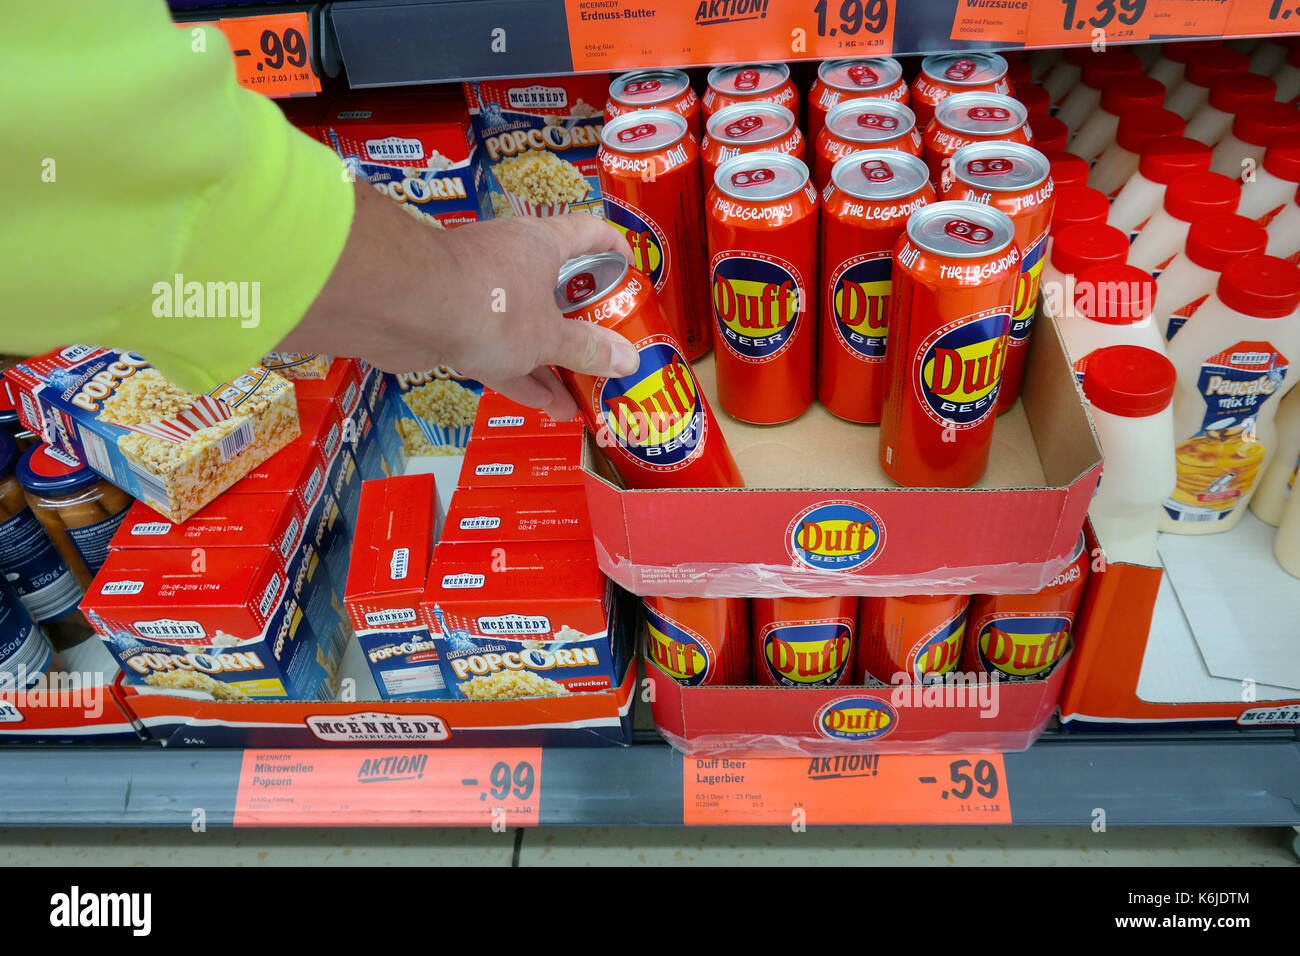 A can of Legendary Duff Beer, manufactured by Duff Beverage - Stock Image